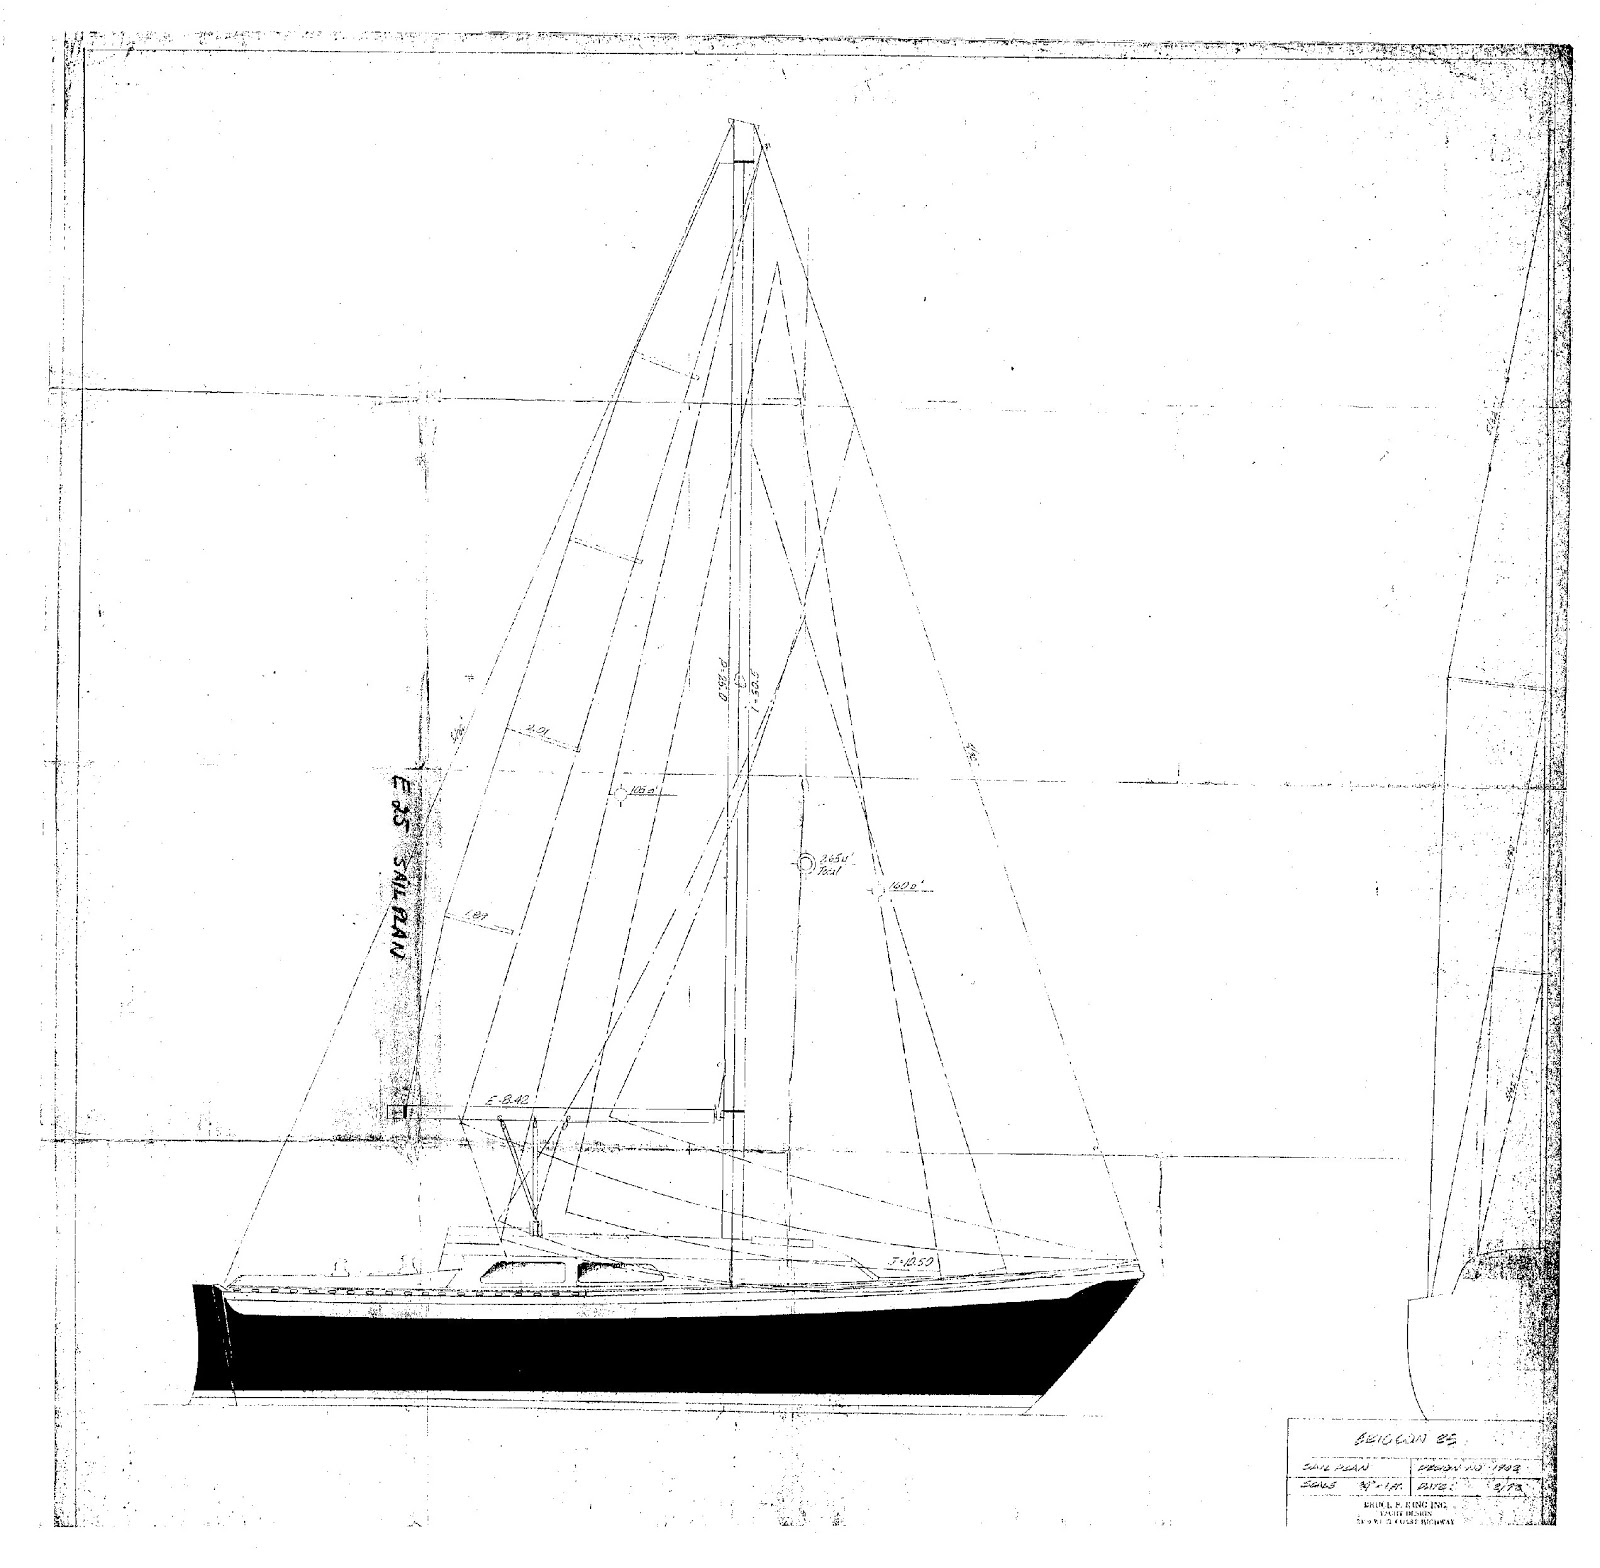 Wiring Diagram For Catalina 25 Sailboat Best Secret Get Free Image About Boat With Solar